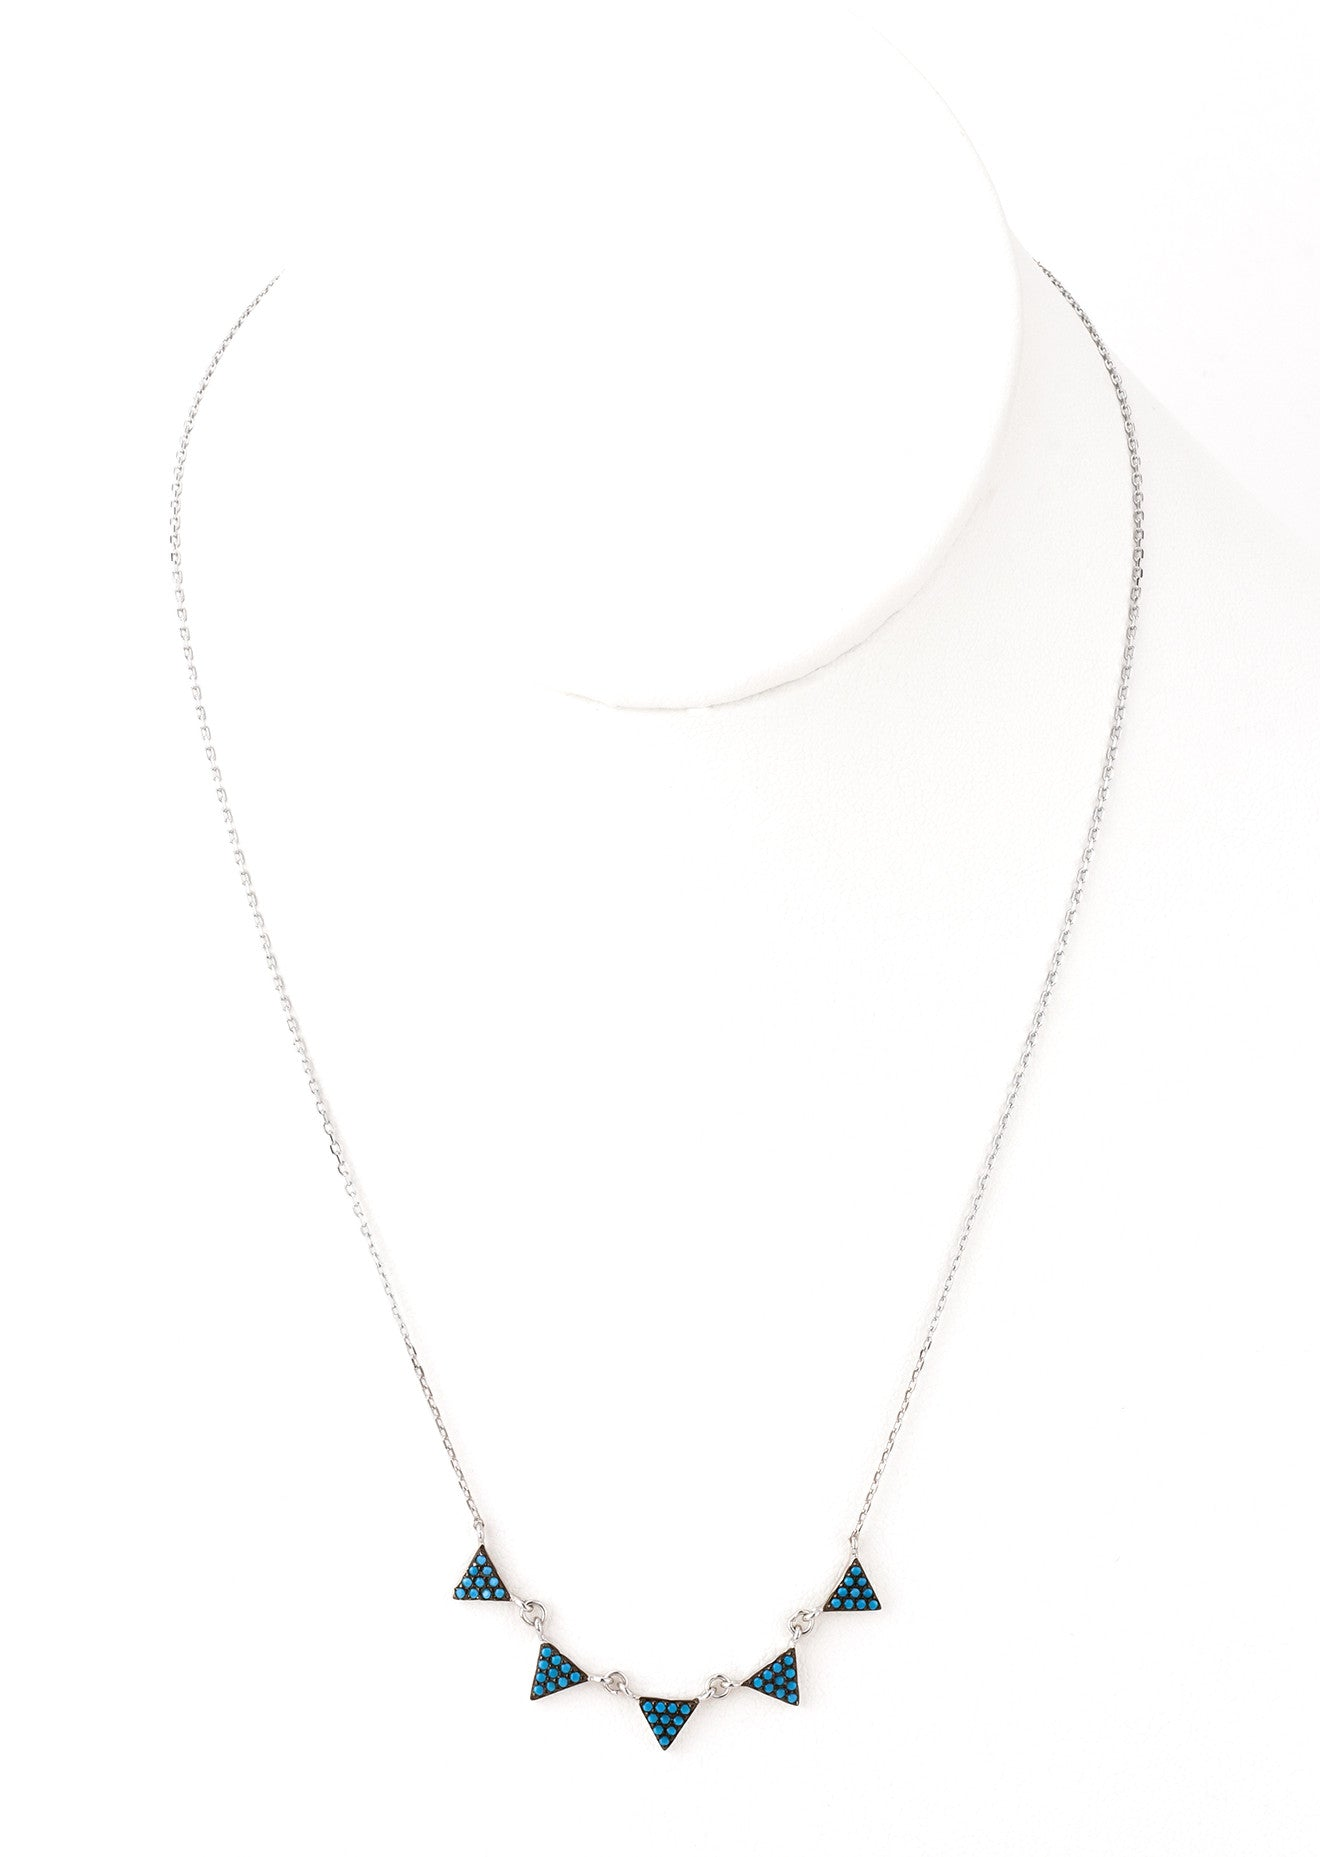 Black & Turquoise Triangle Pendant - Silver 925